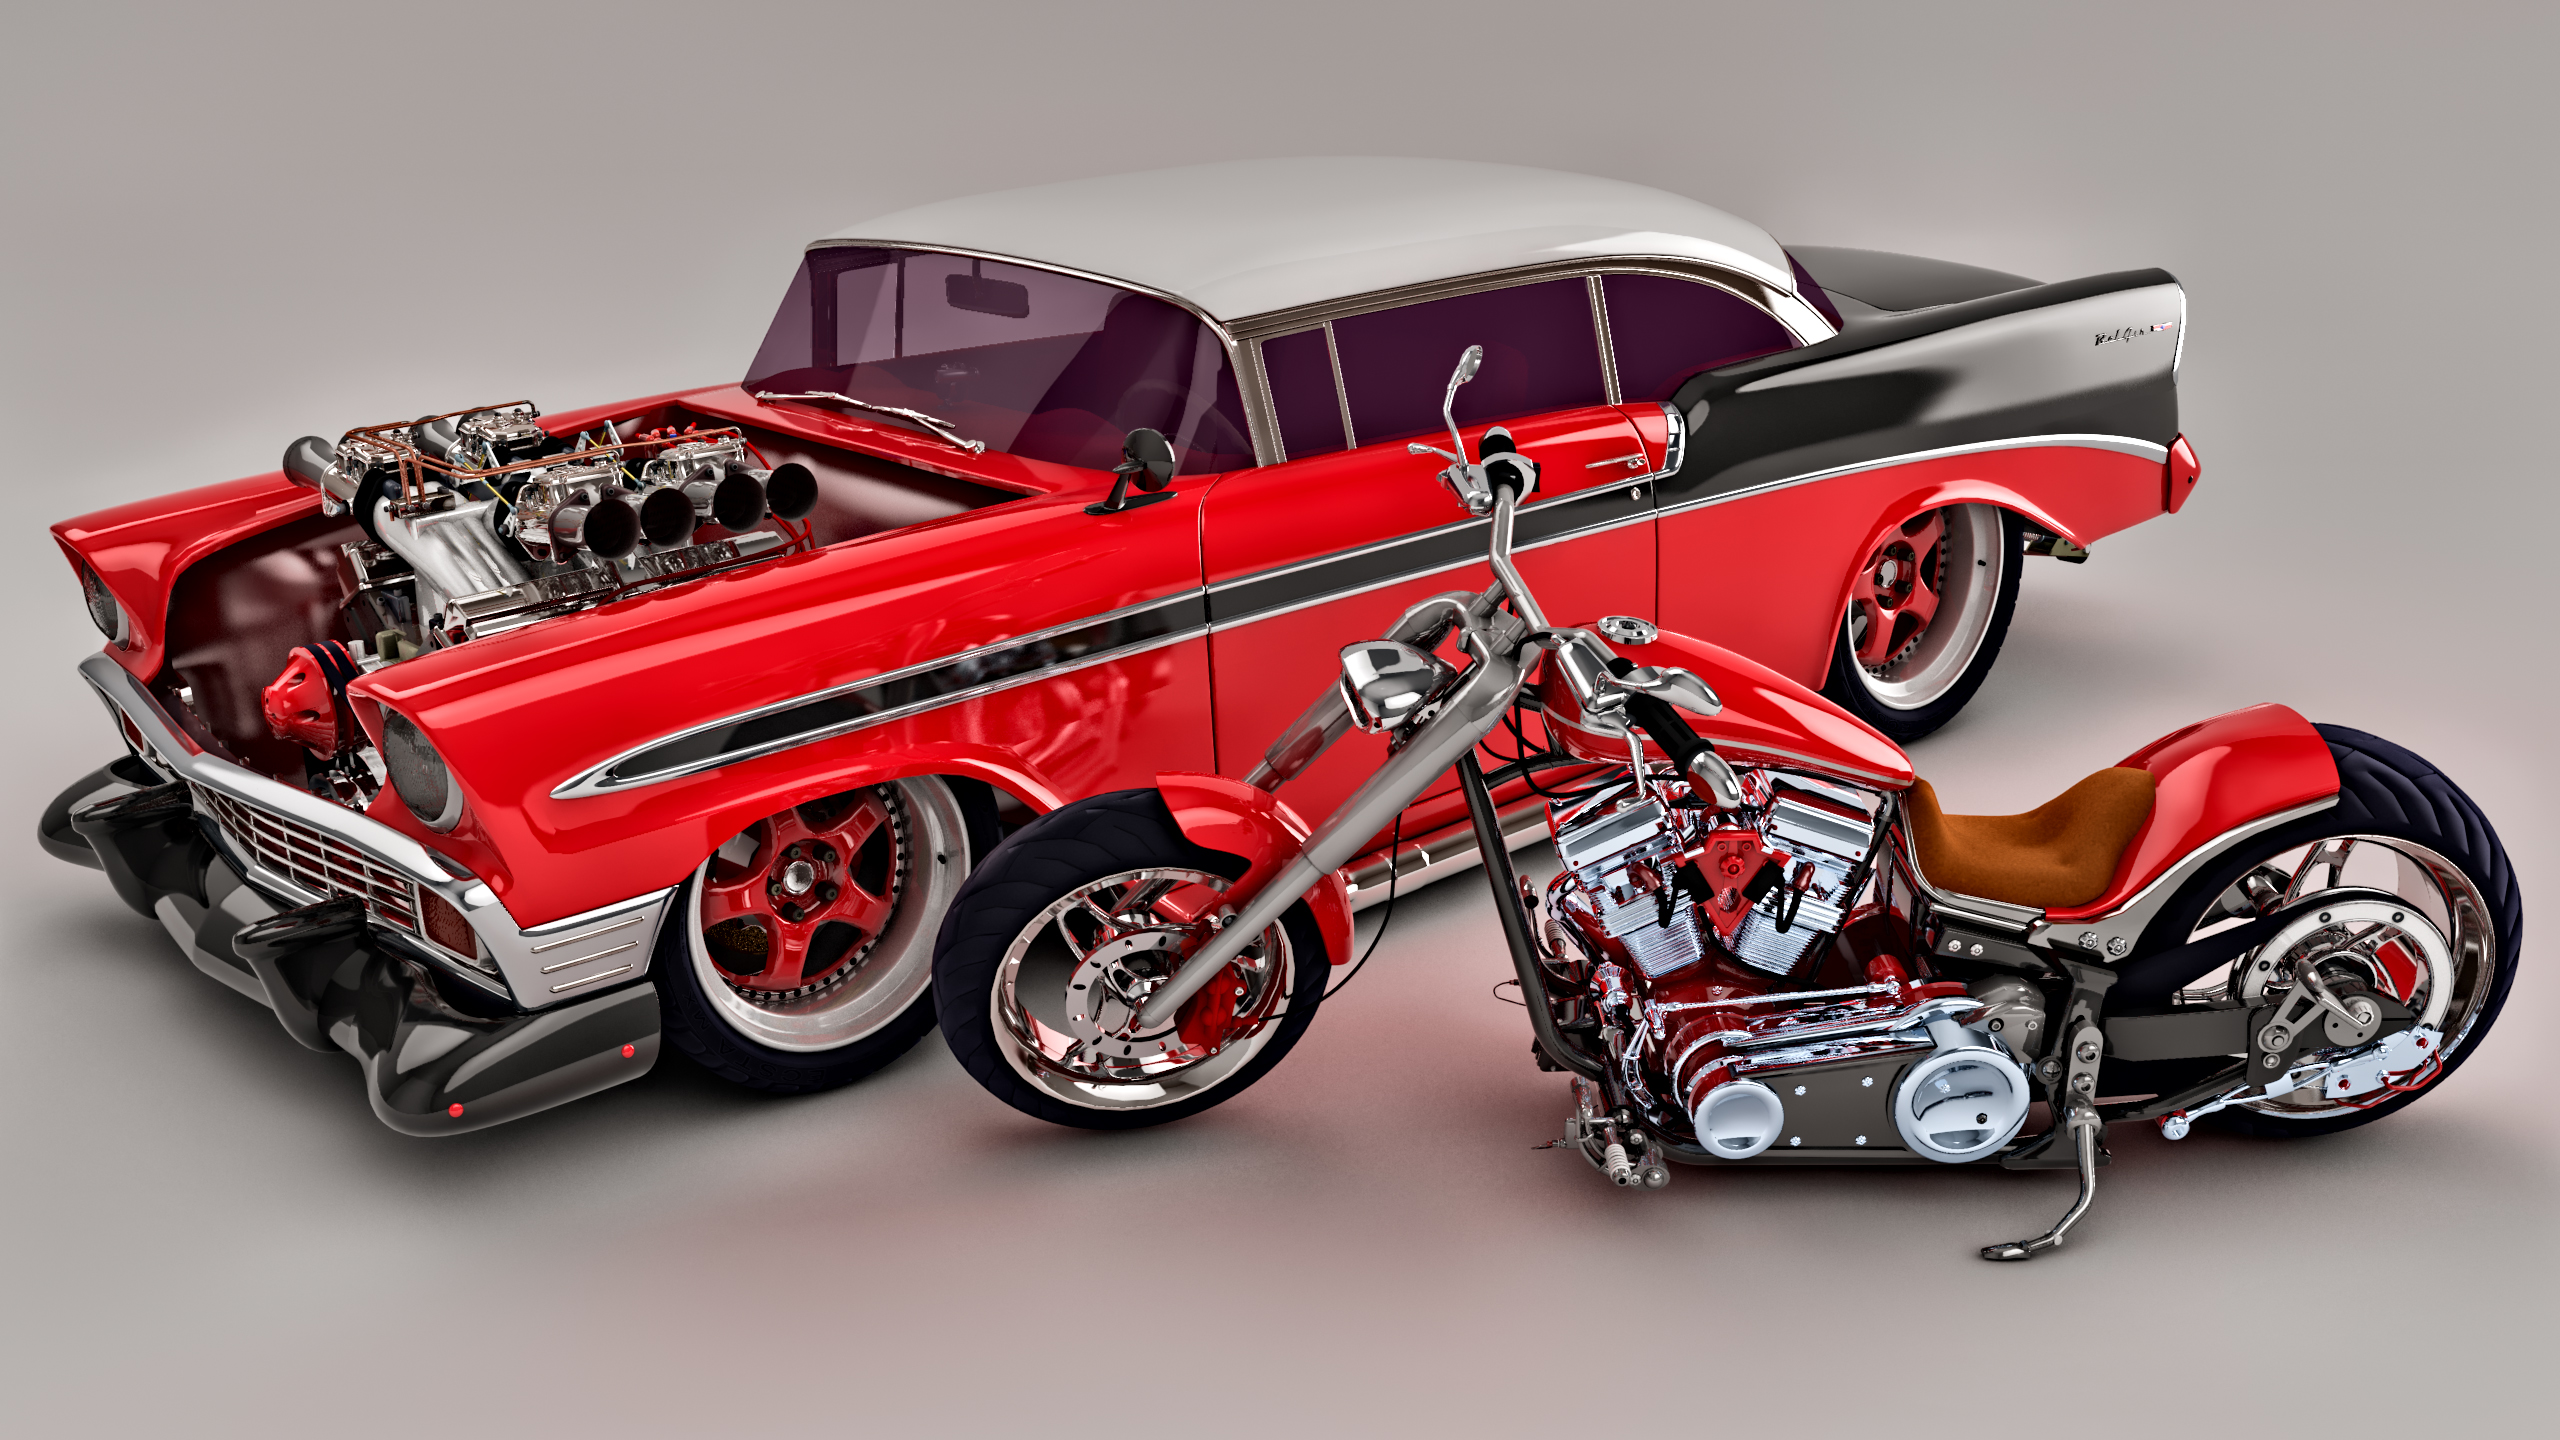 1956 bel air for sale submited images -  1956 Bel Air Custom And Bike By Samcurry